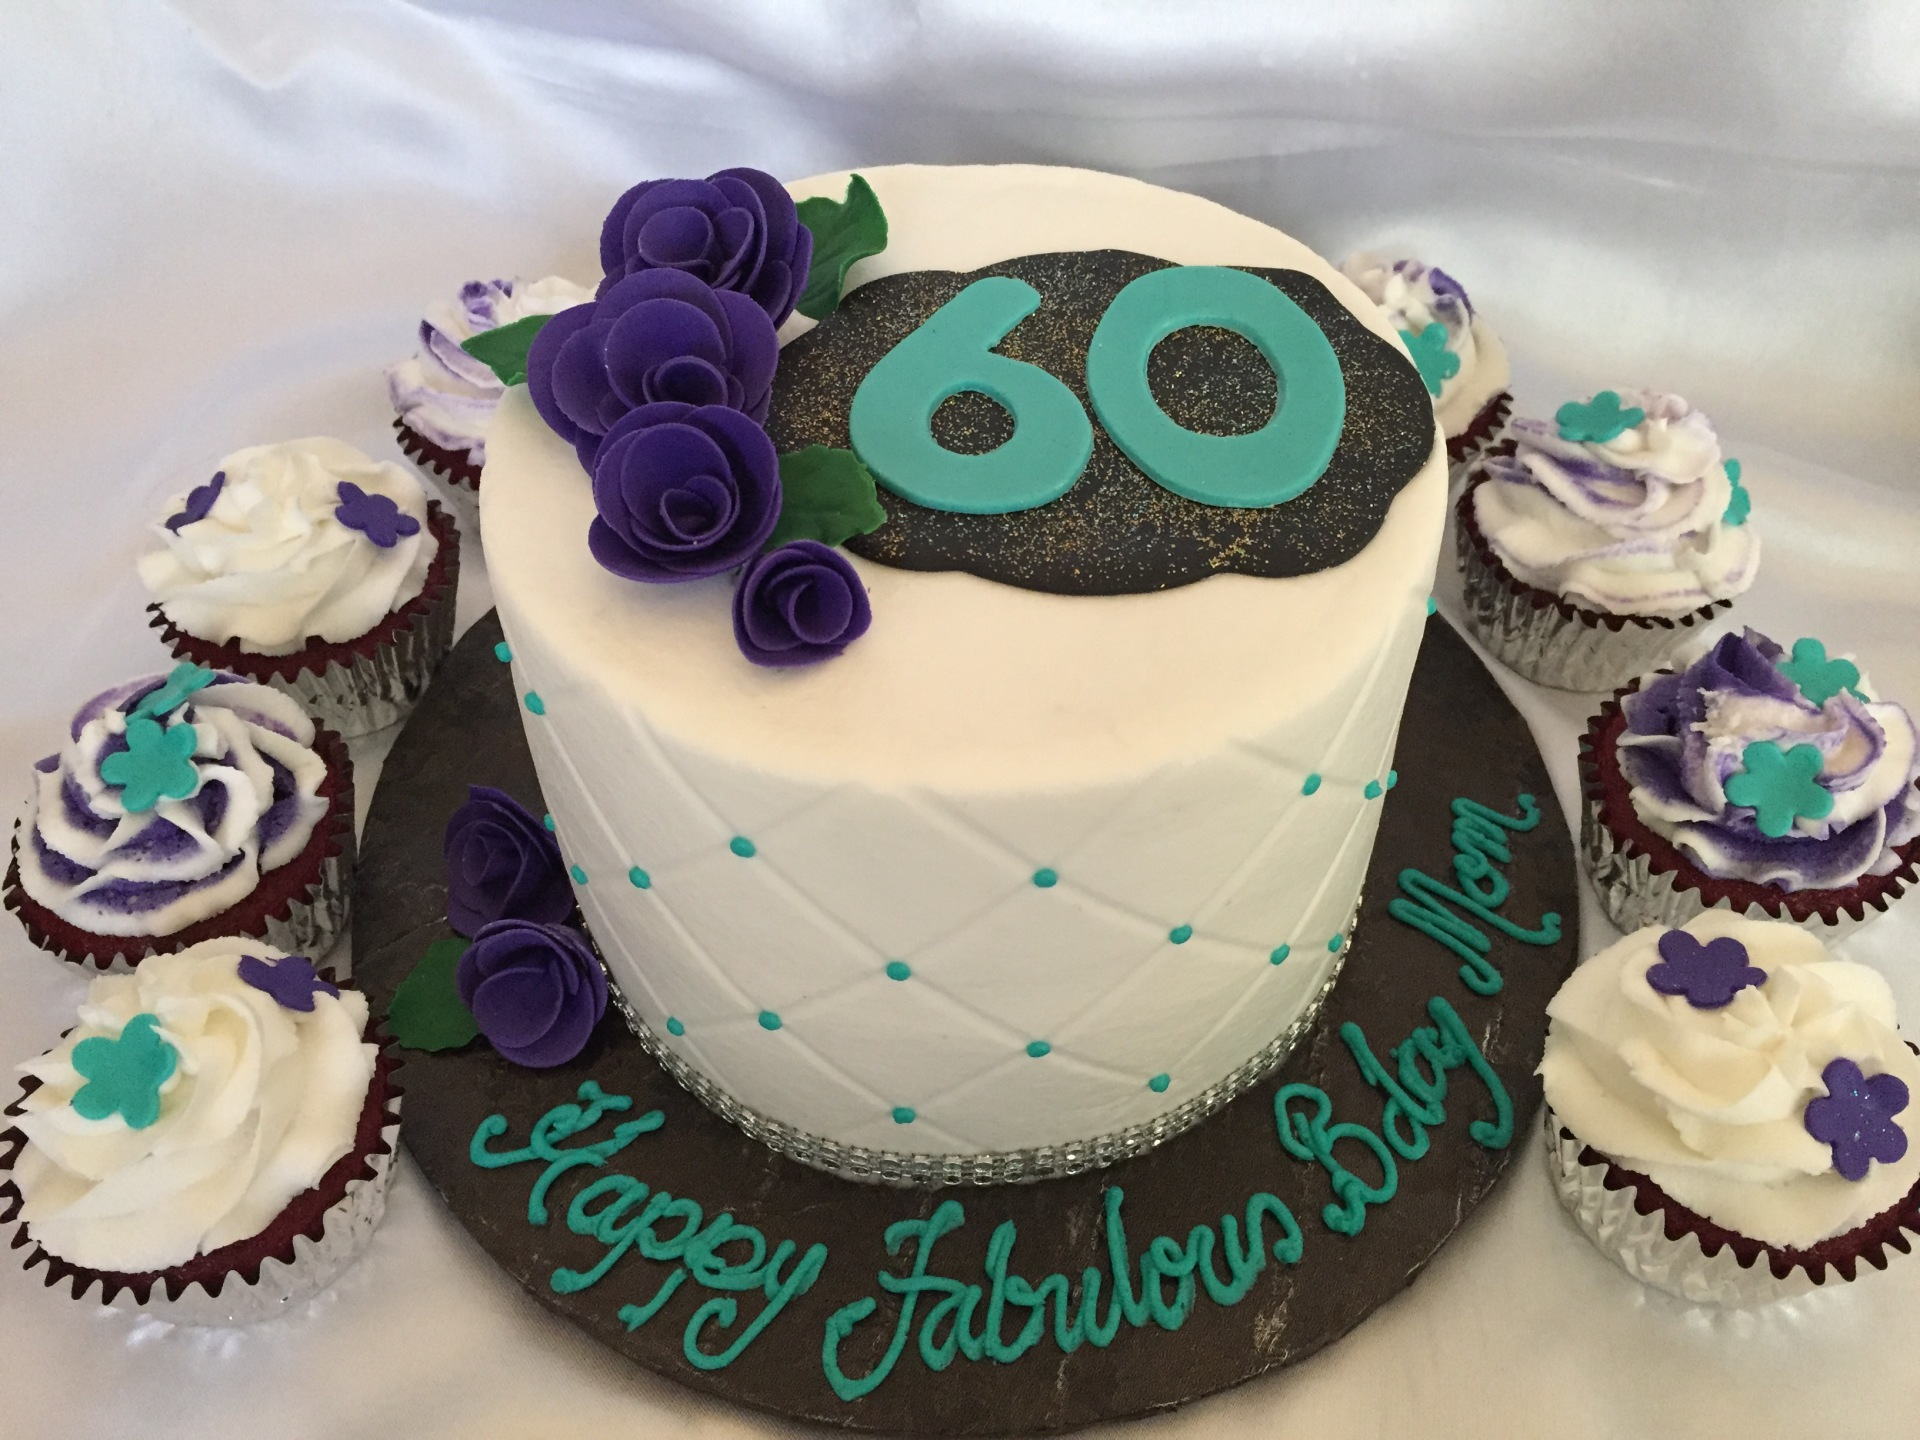 60th birthday teal and purple cake cupcakes